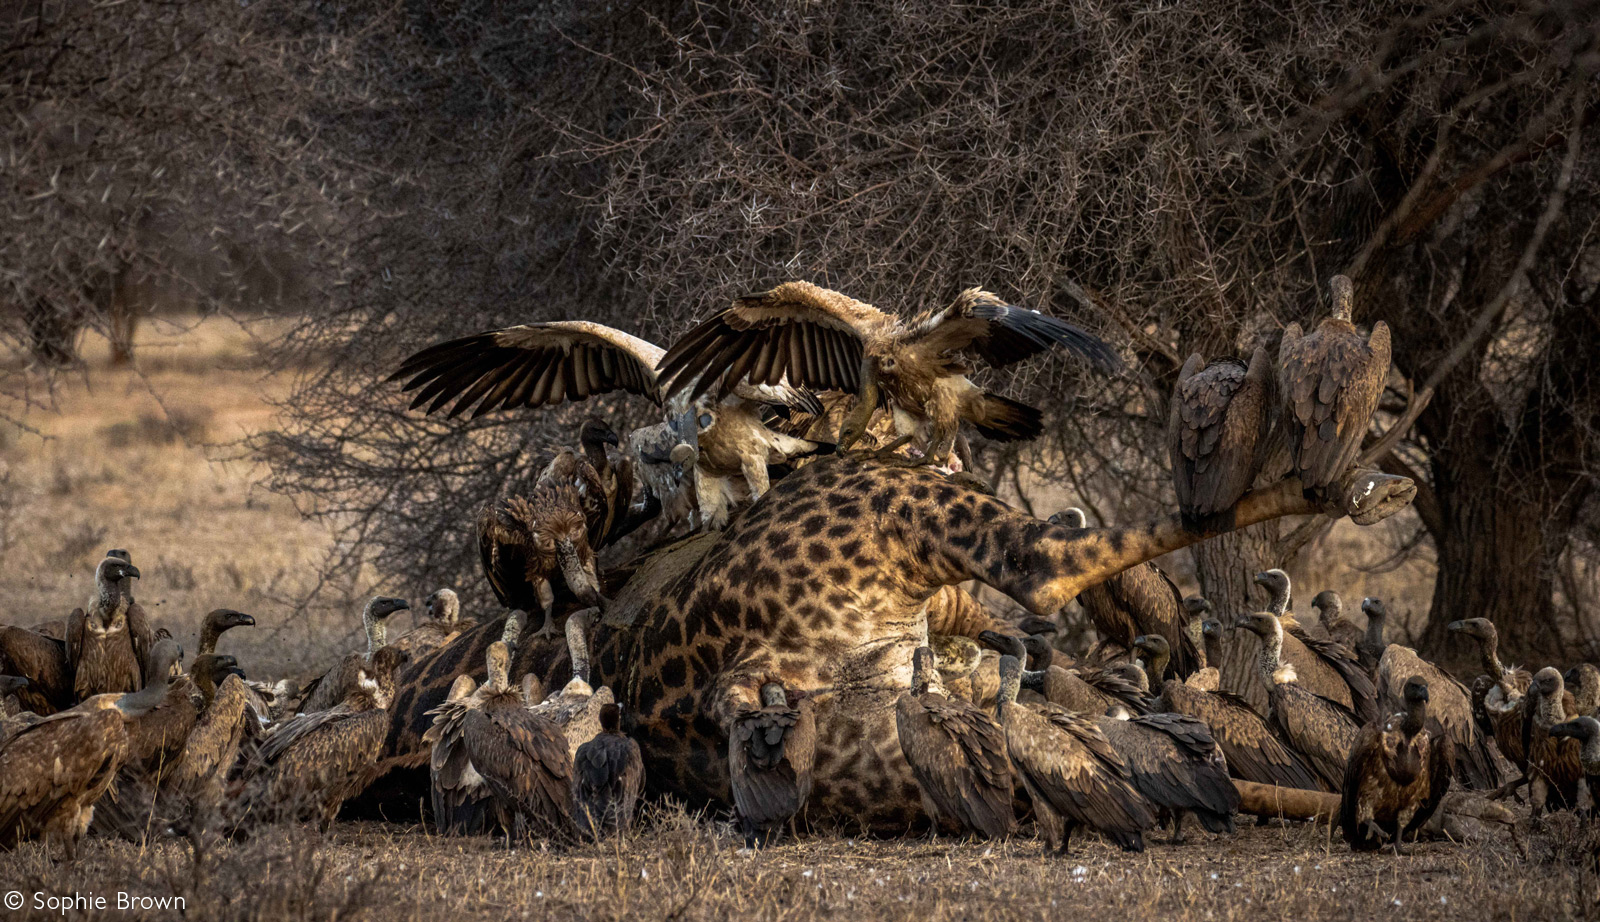 Vultures descend to make the most of a large giraffe carcass. Greater Kruger National Park, South Africa © Sophie Brown